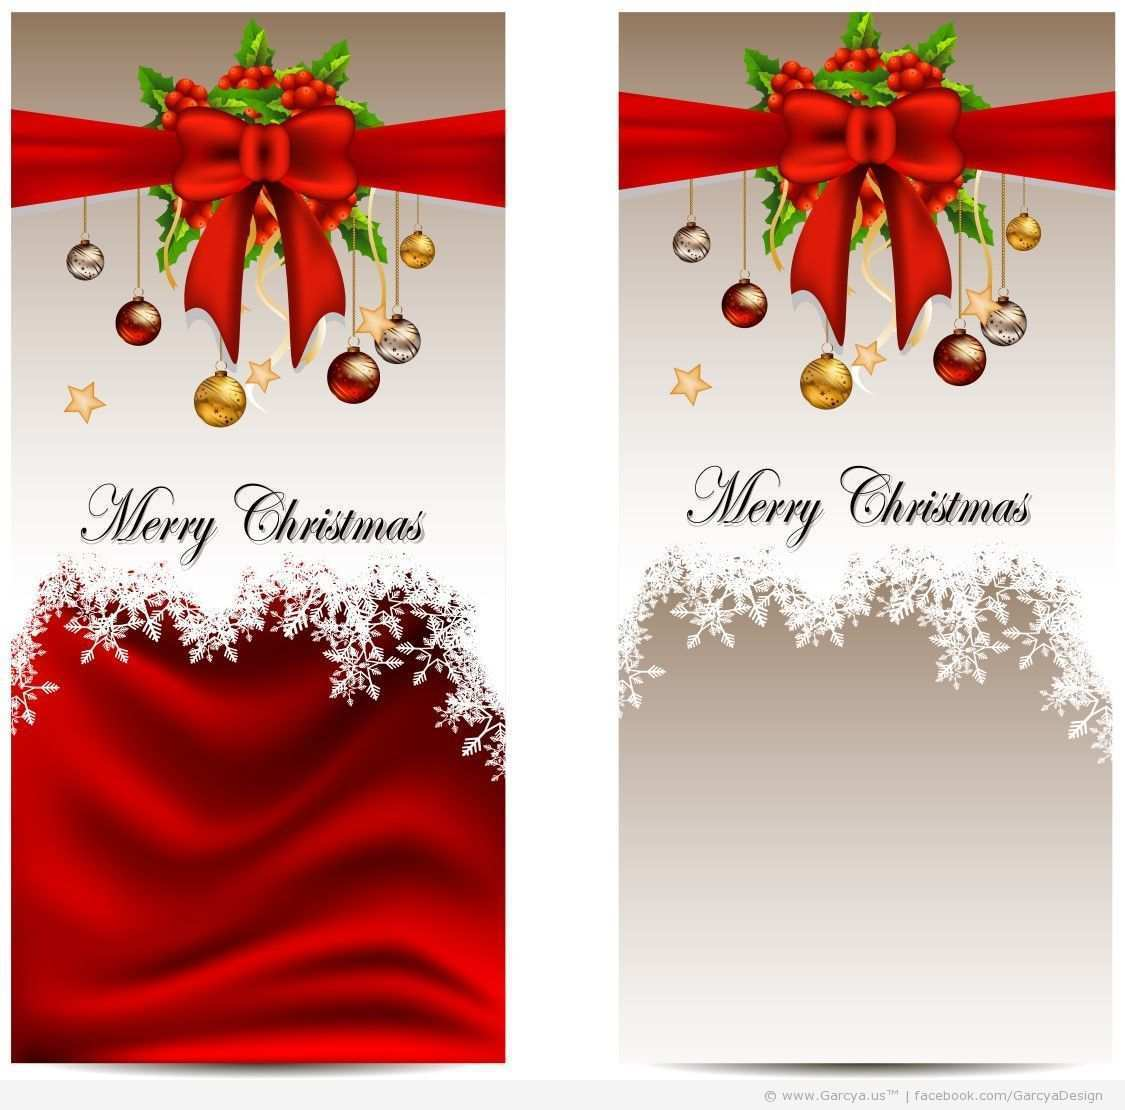 41 Printable Xmas Card Templates Free Download Photo for Xmas Card Templates Free Download